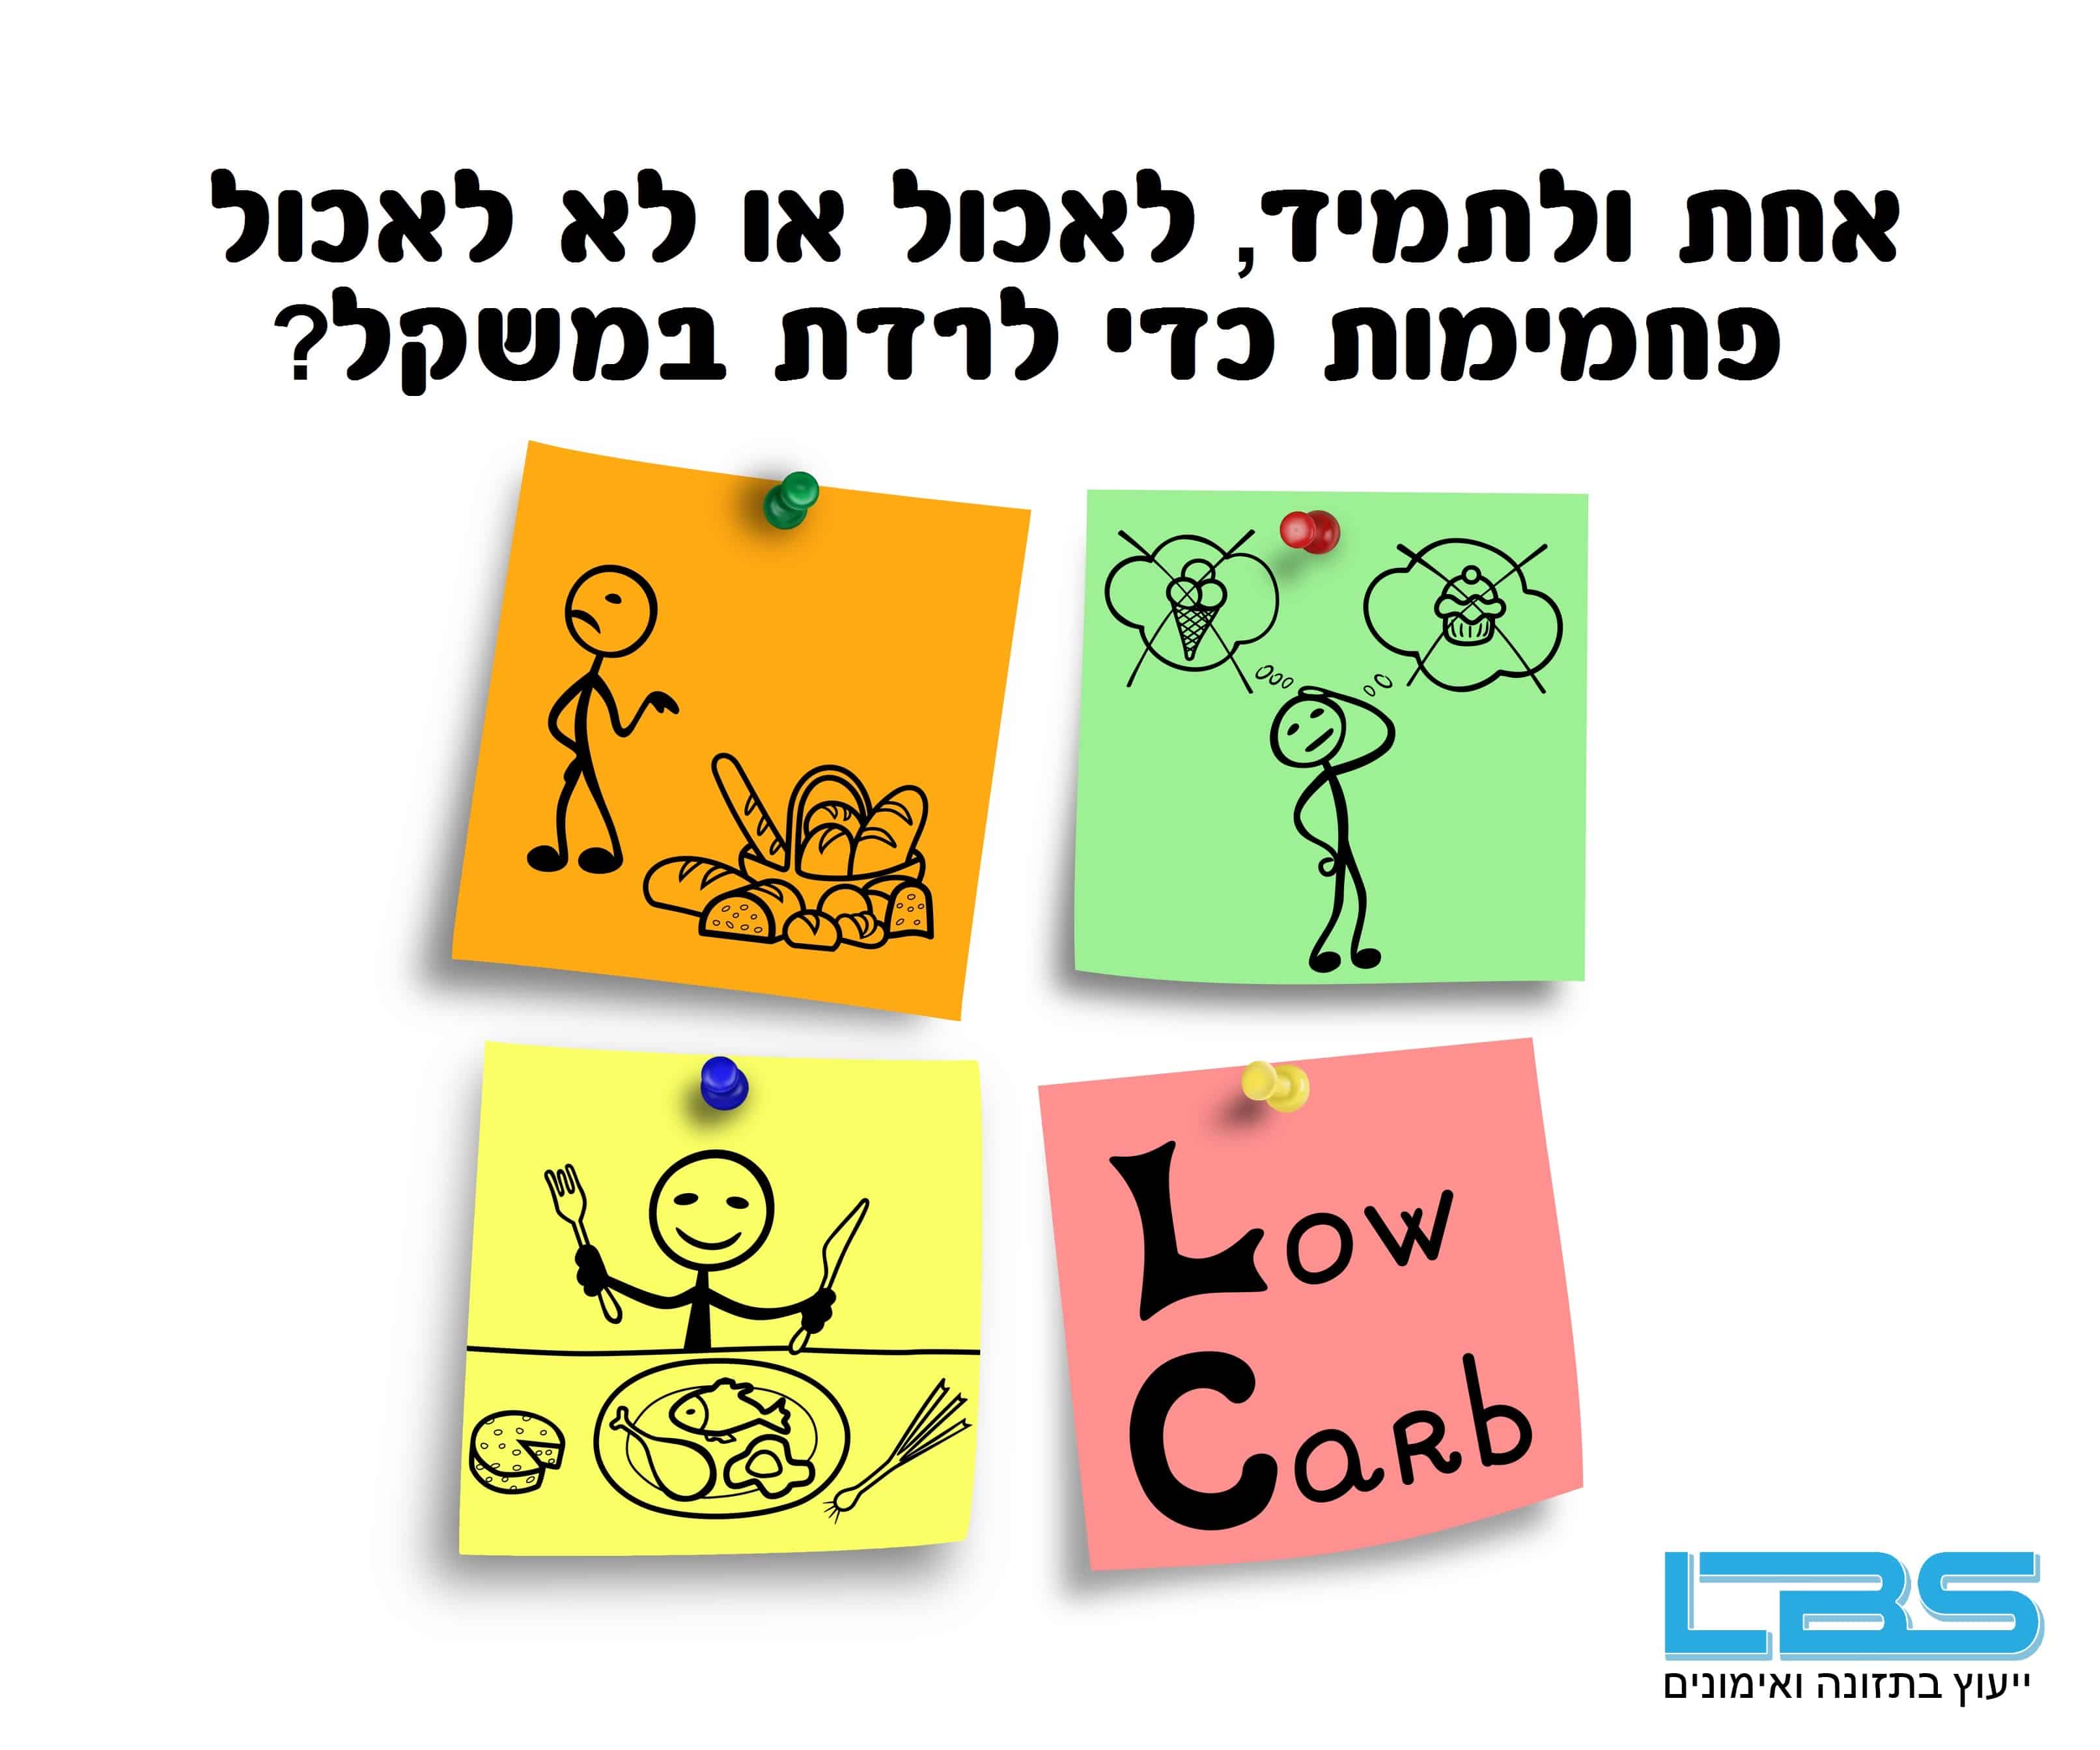 Low carb diet concept illustration on a colorful notes.